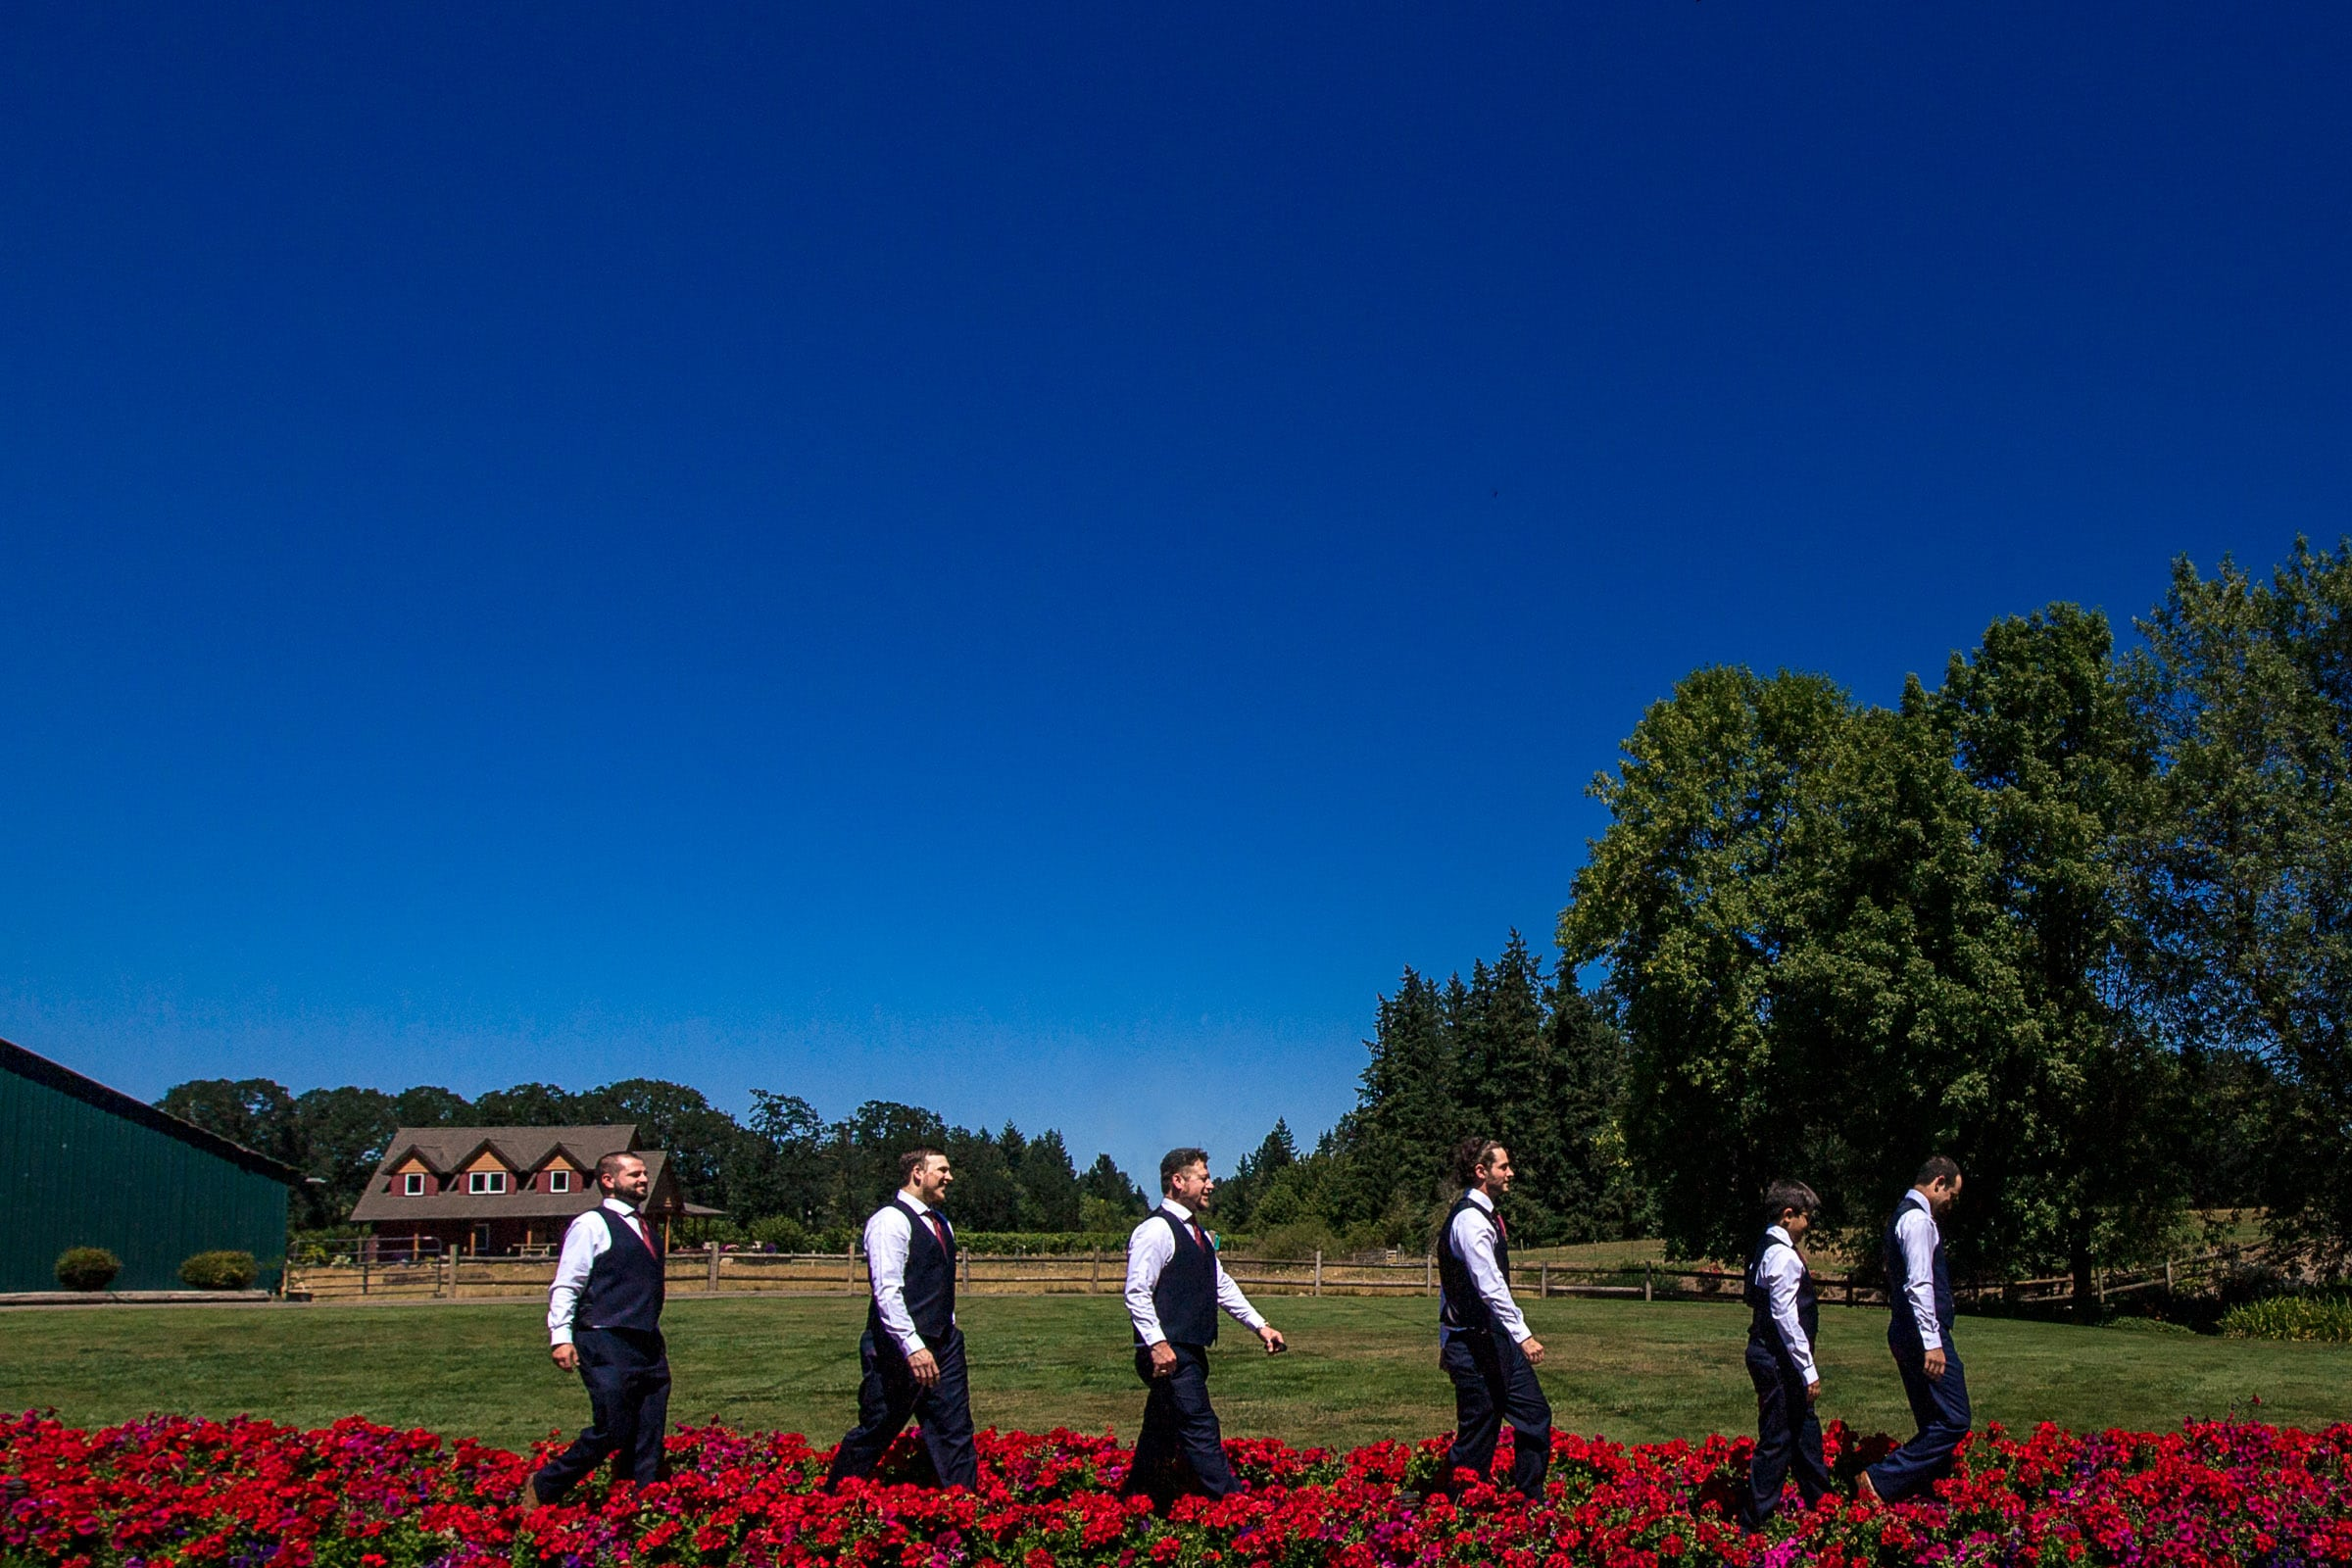 Groomsmen walking through bright red flowers at a Postlewait's Country wedding located in the heart of the Willamette Valley between Portland and Salem near Aurora, Oregon